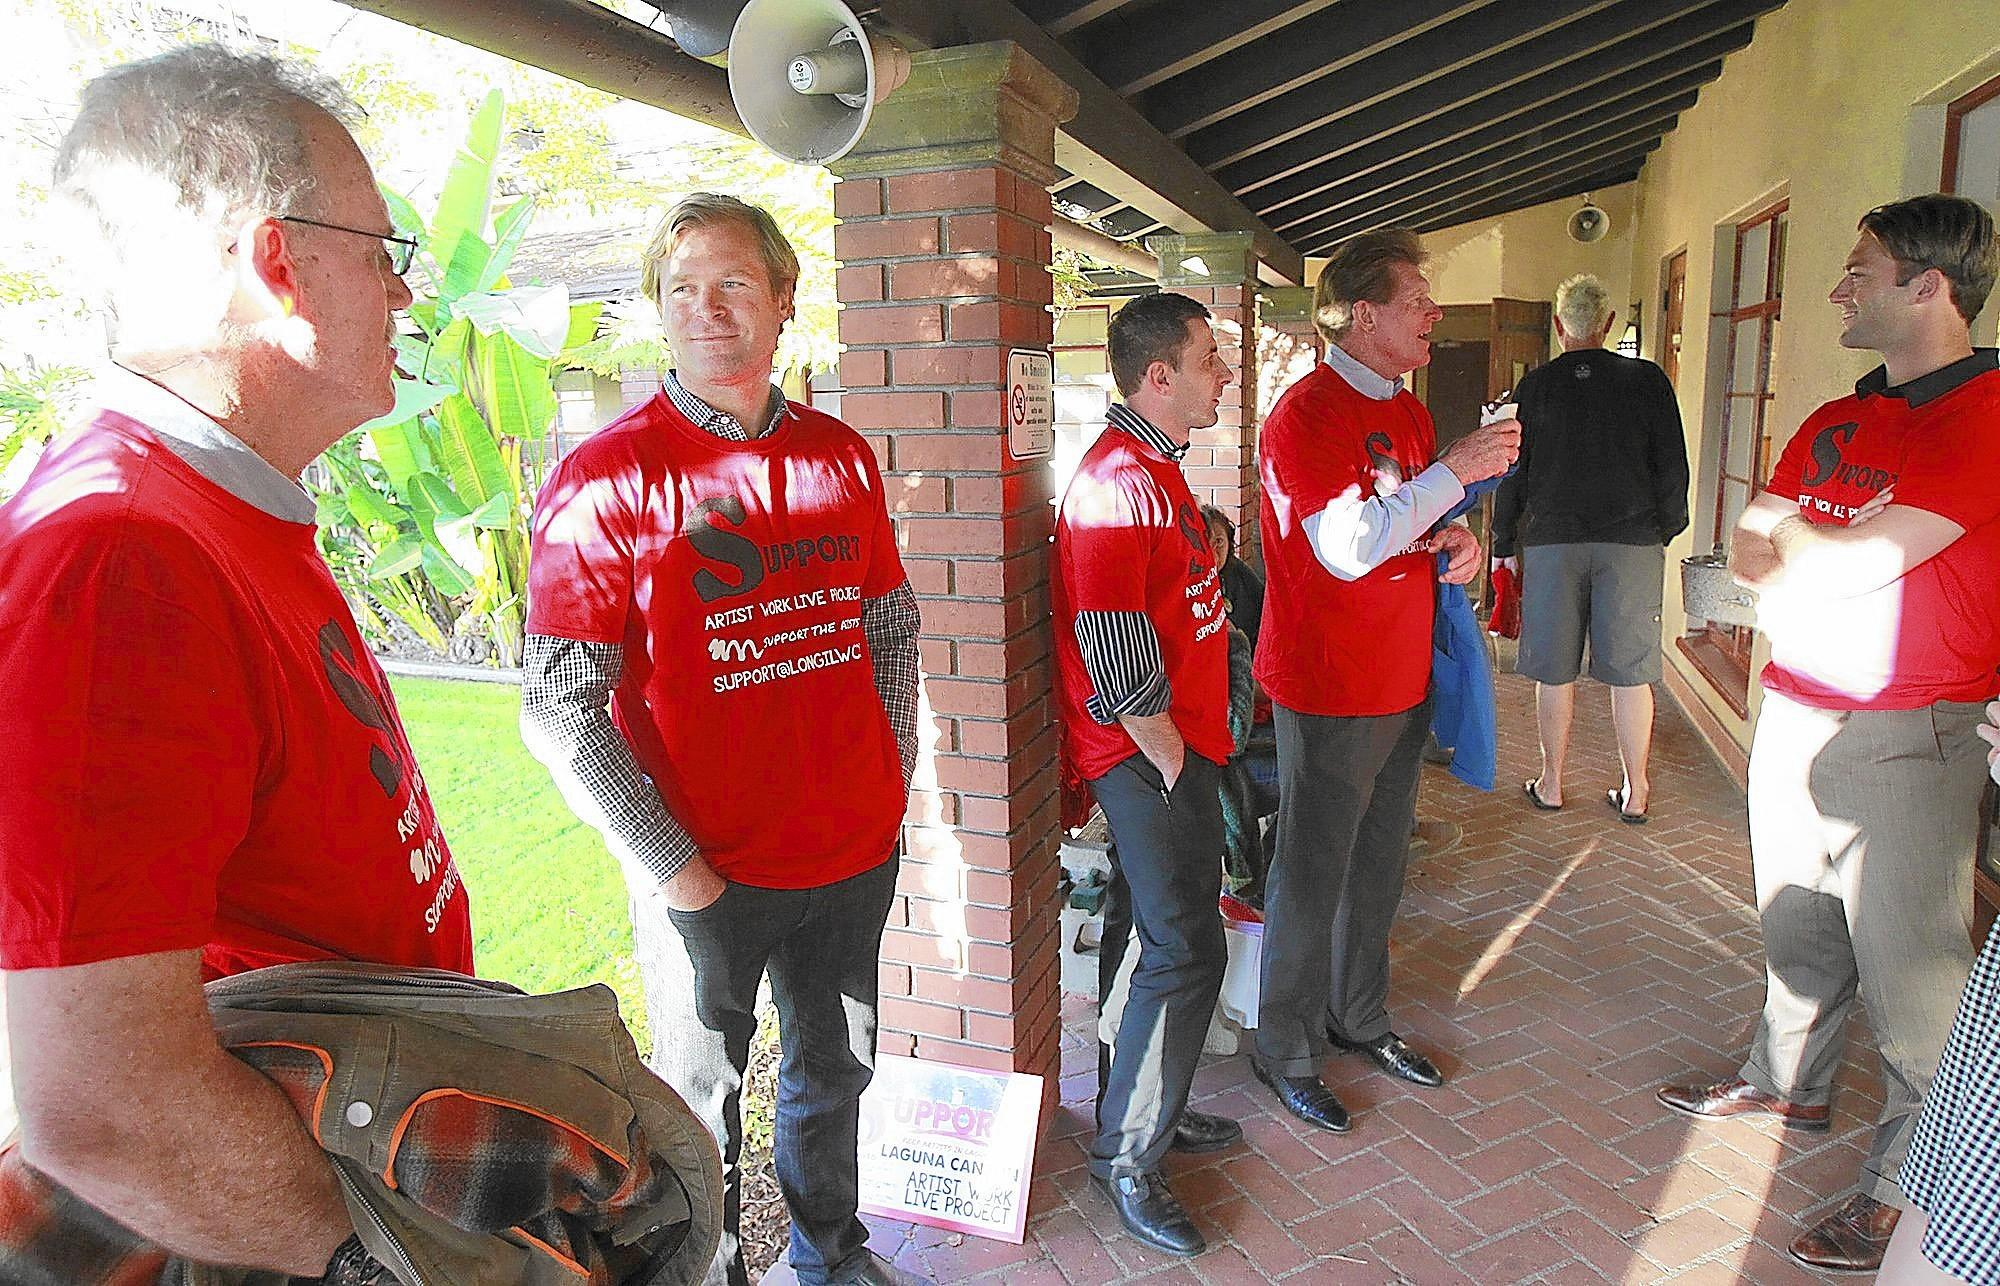 Wearing red shirts in a show of unison, supporters including project developer Chris Dornin, second from left, stand outside the Laguna Beach City Council chambers before a rule to approve a 30-unit artist live-work project in Laguna Canyon during Tuesday's City Council meeting.